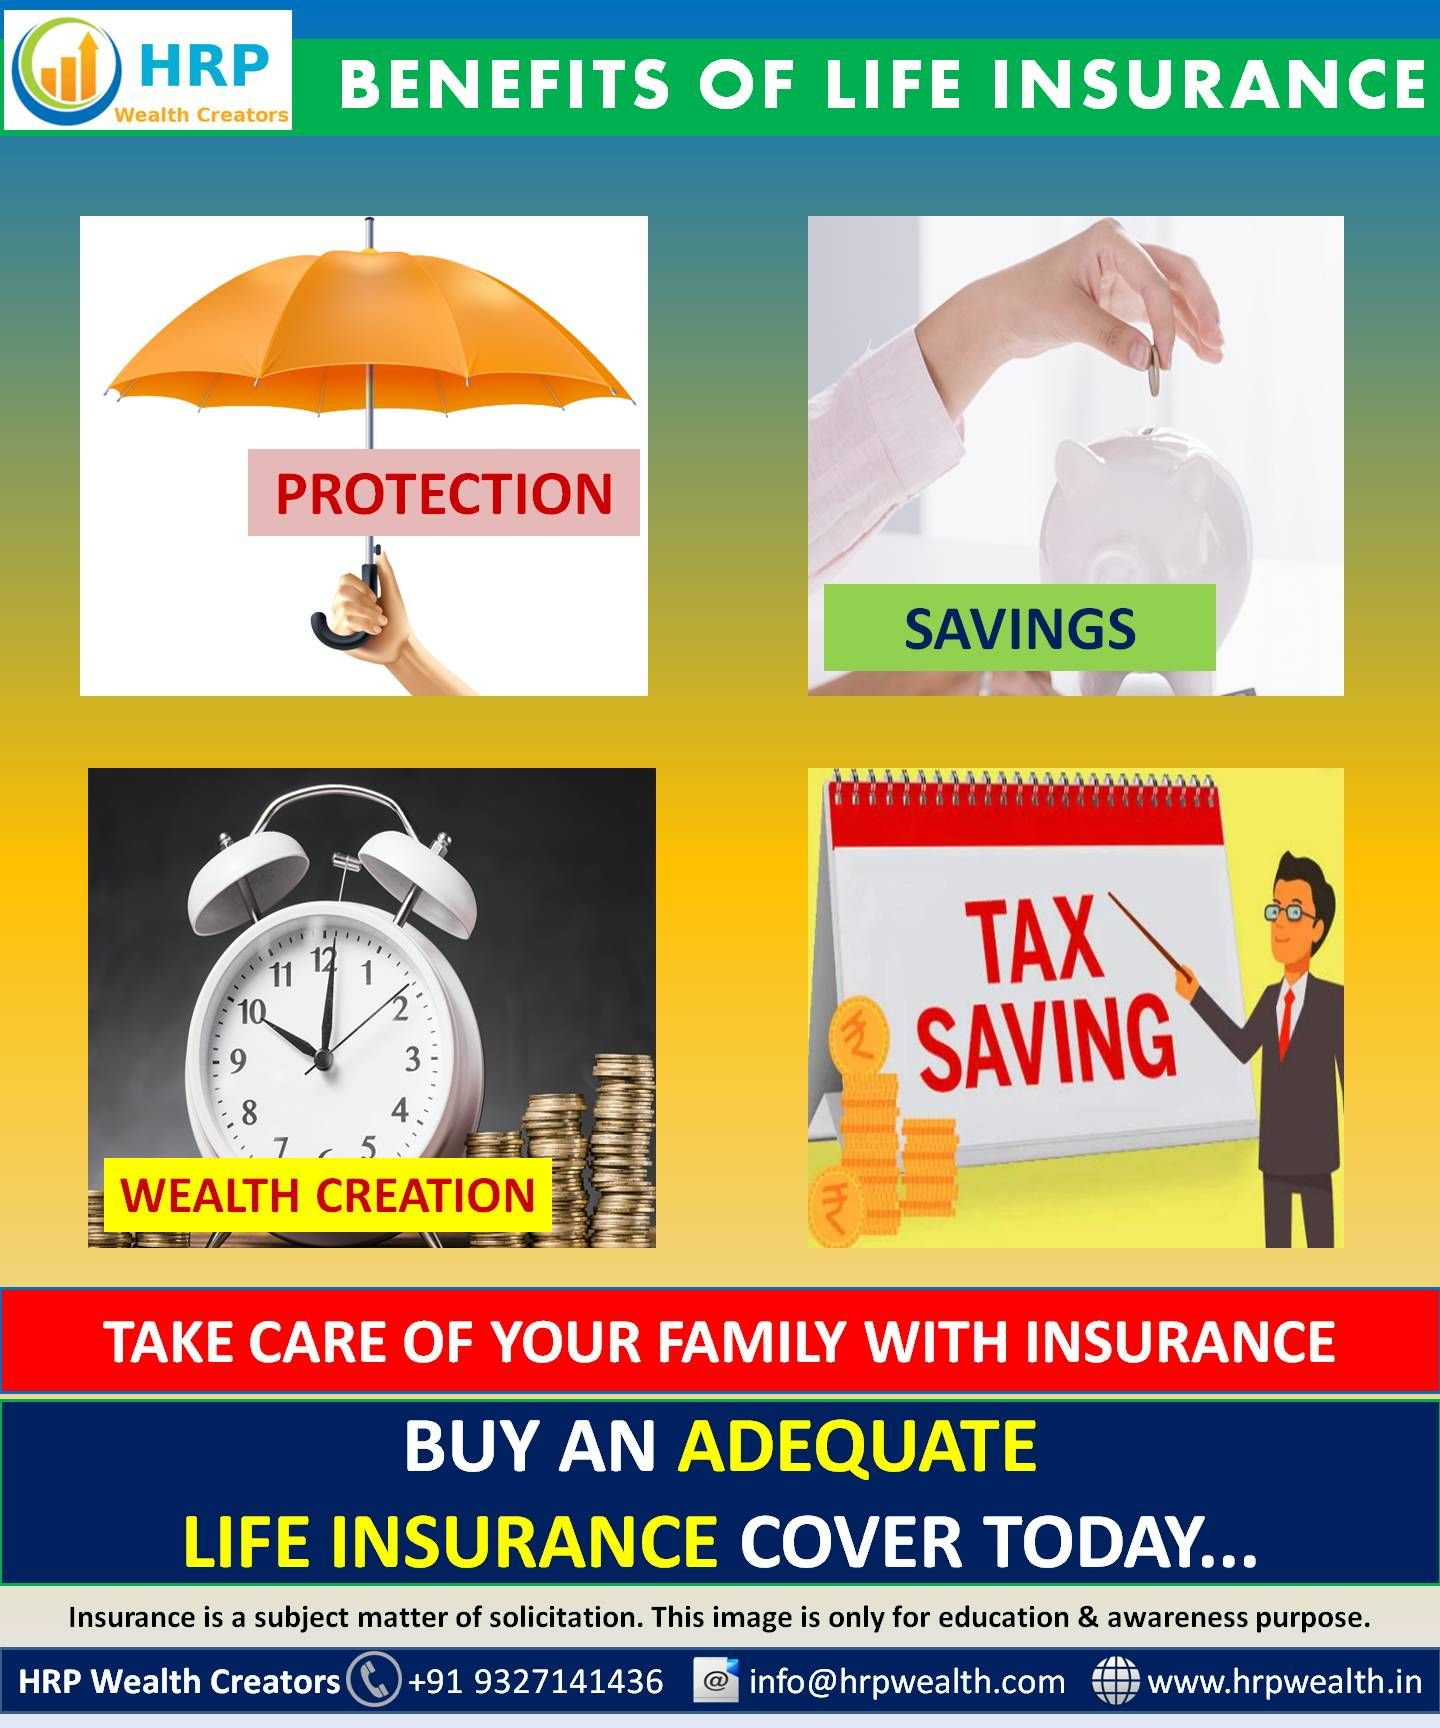 Benefits Of Life Insurance Benefits Of Life Insurance Life